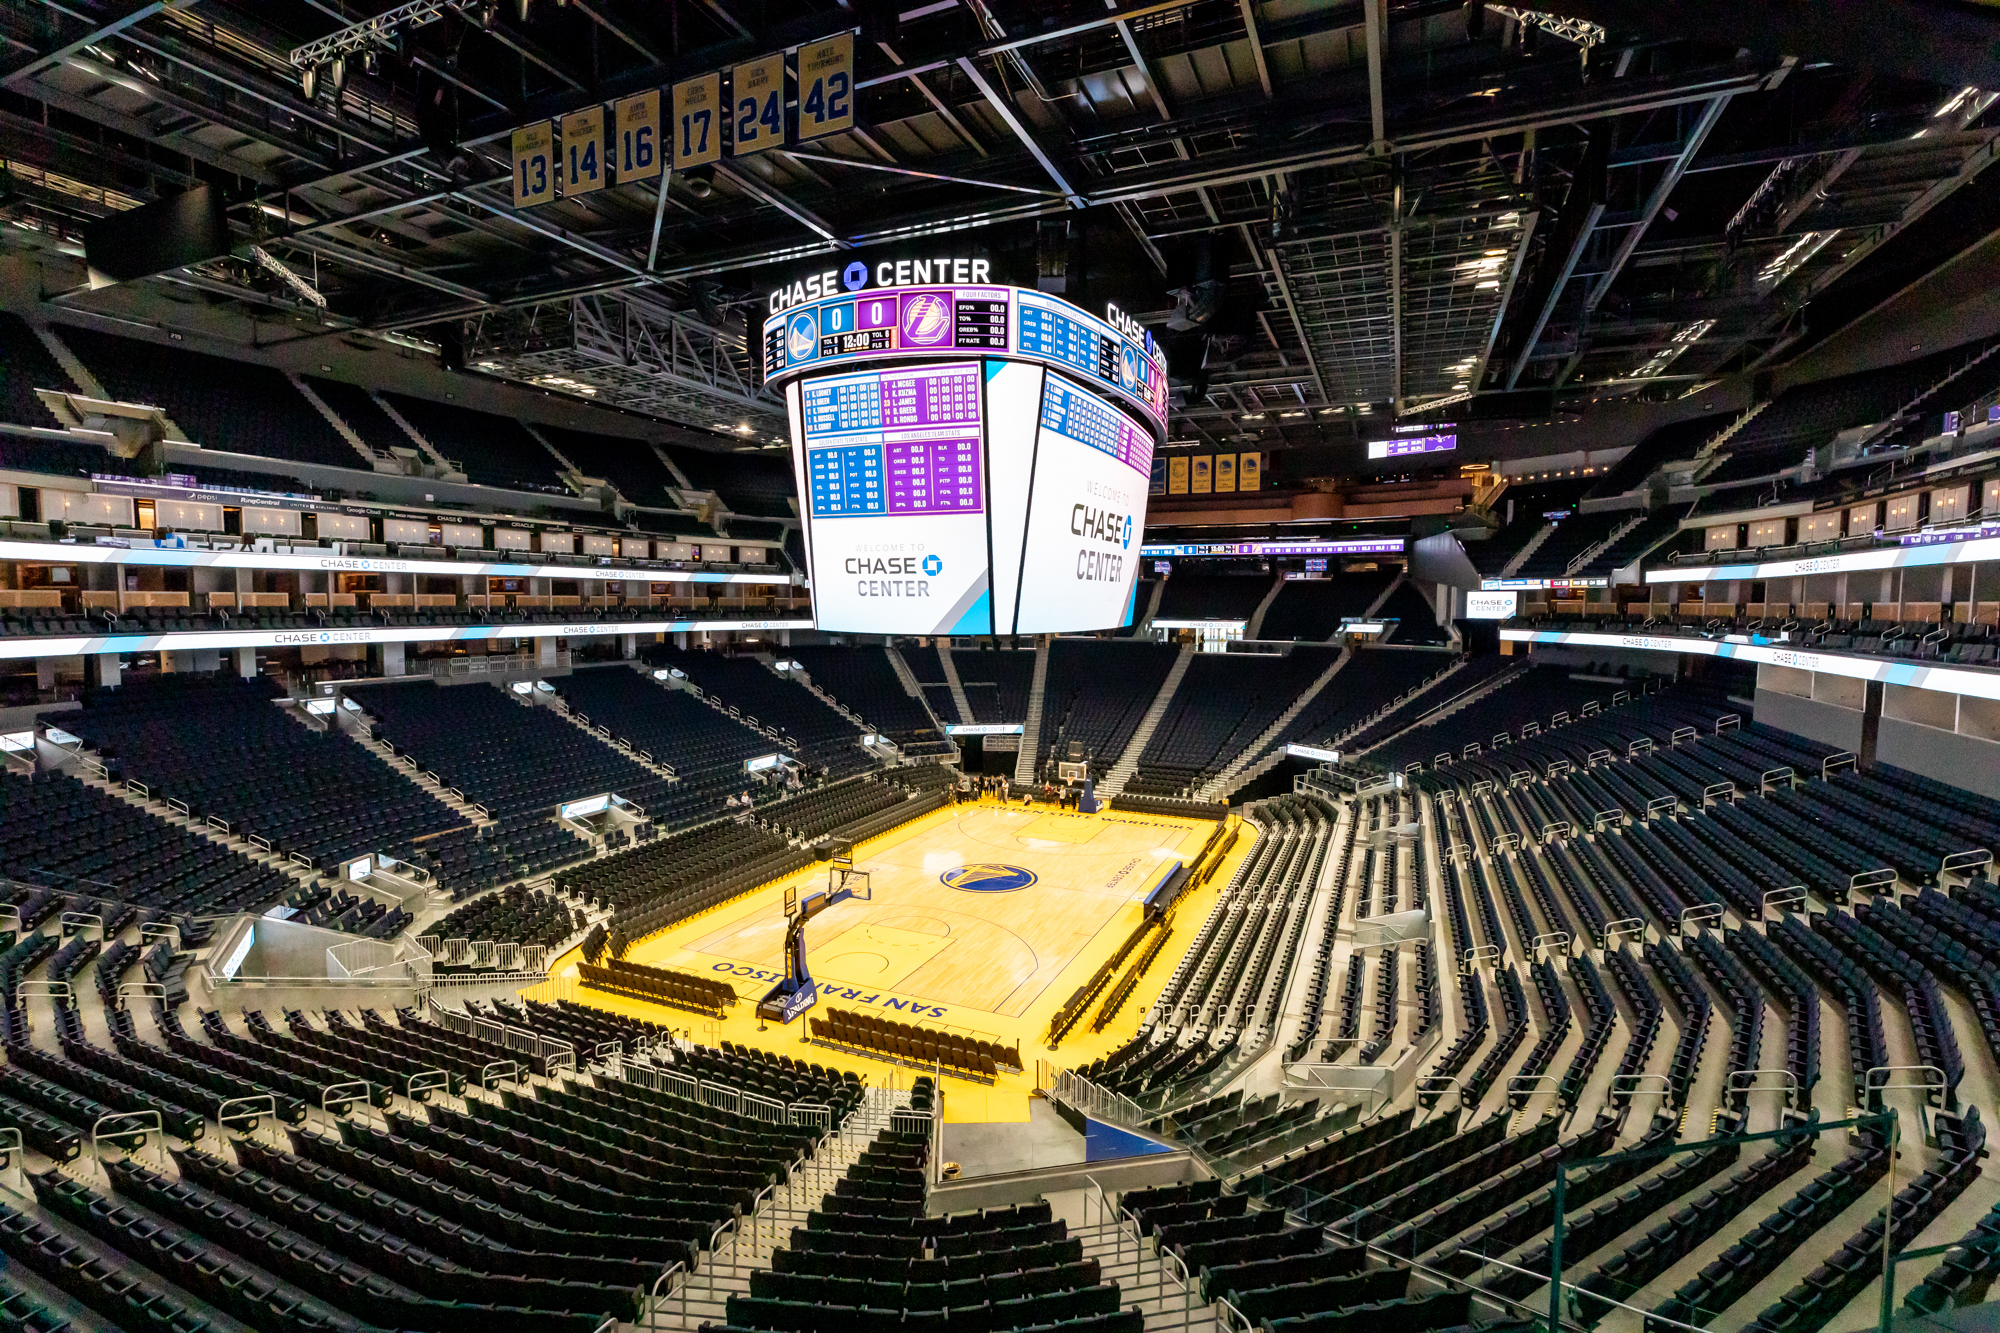 Large arena shot from up high showing empty seating, empty court, and a bright and sharp scoreboard.